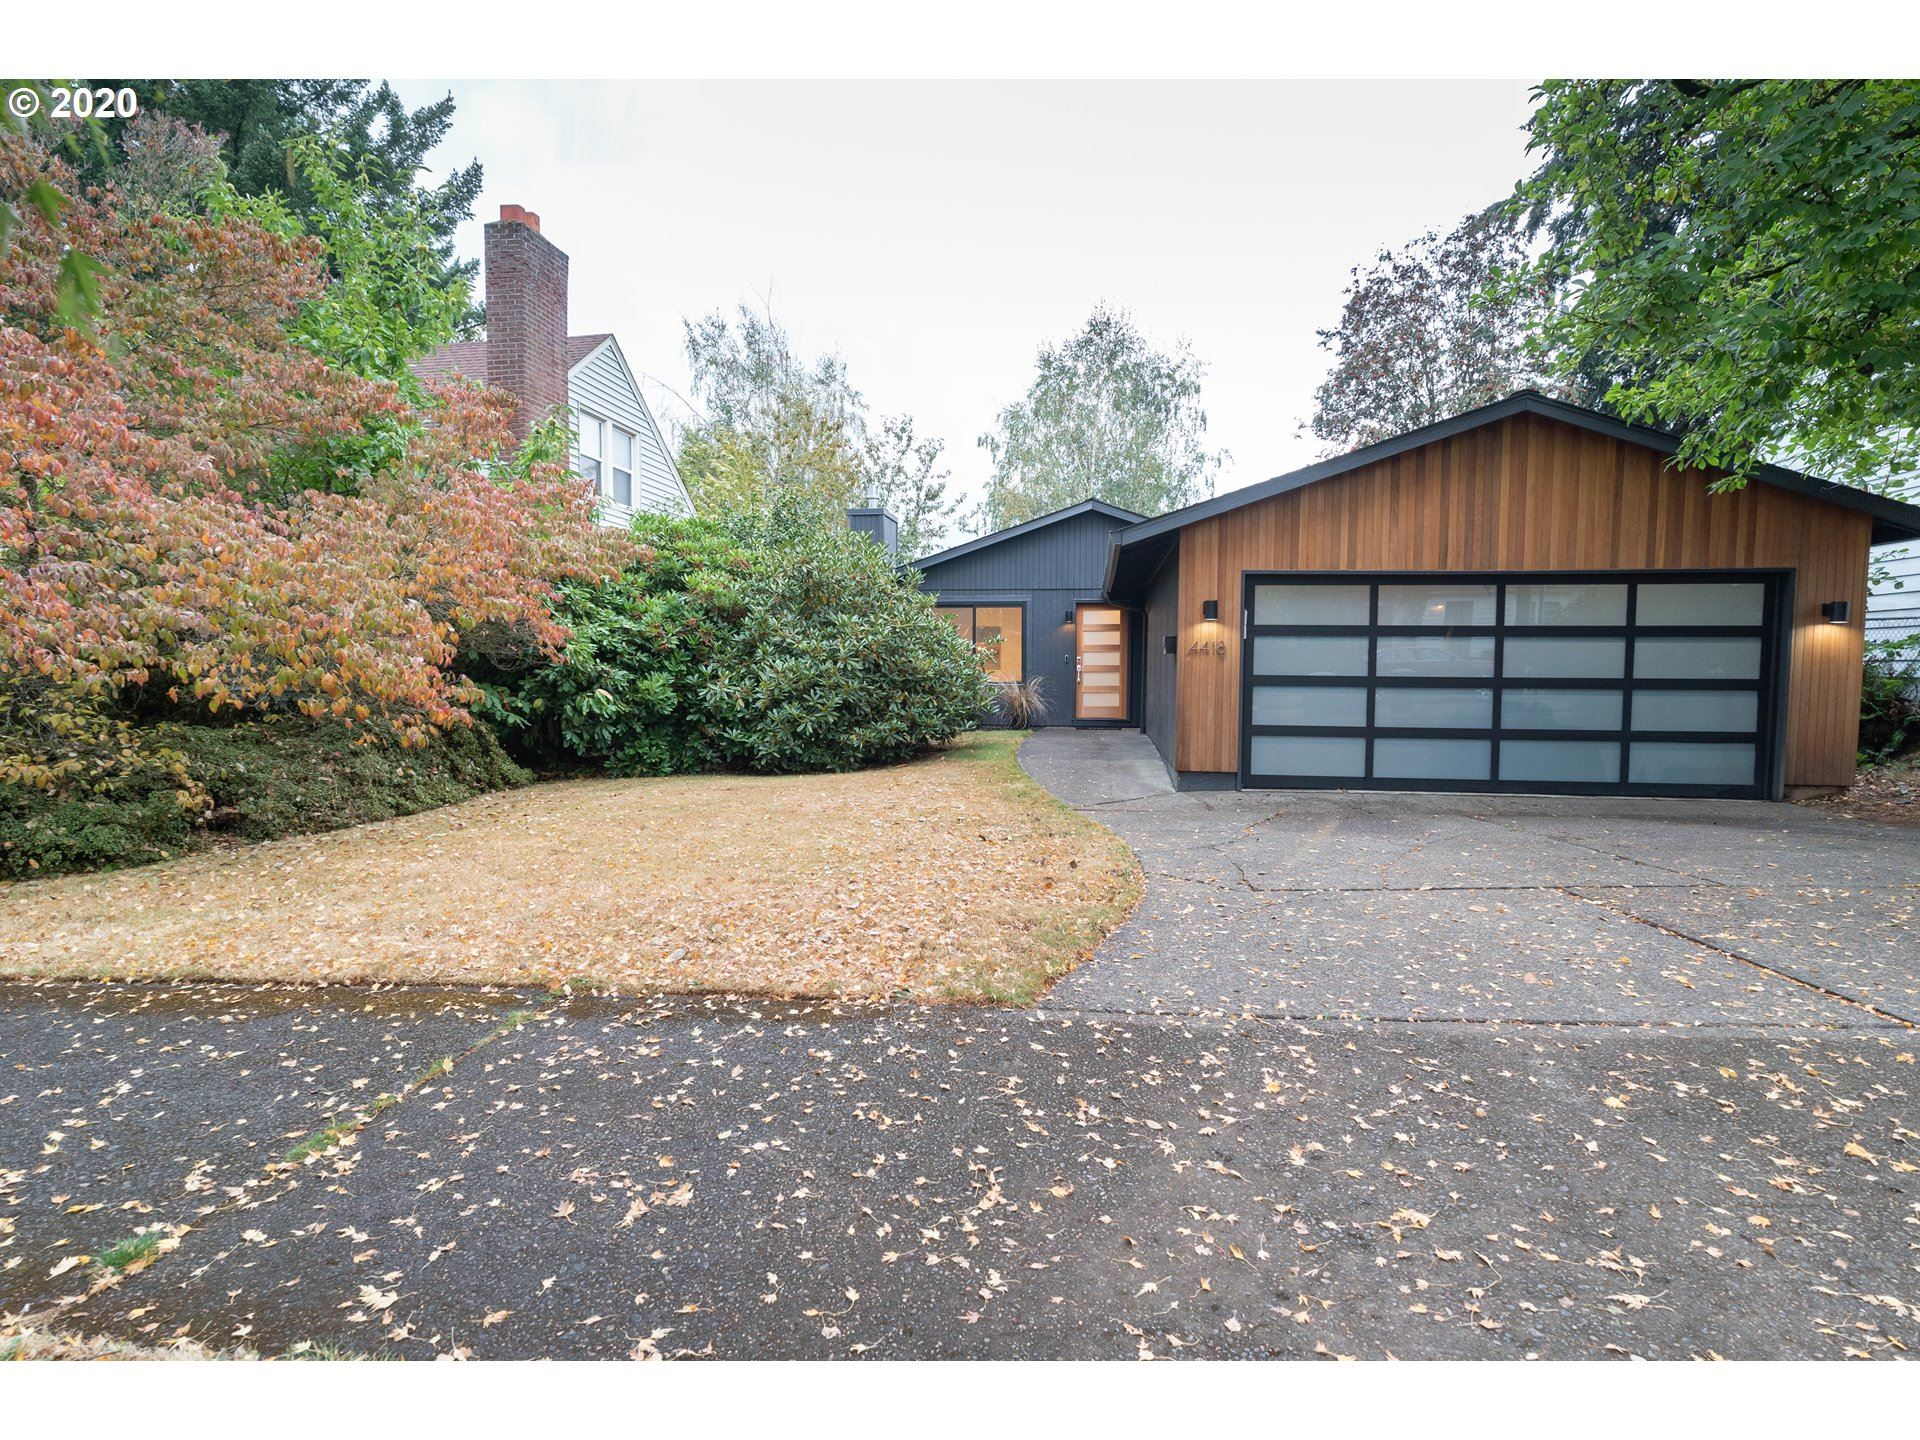 4418 NE 80TH AVE, Portland, OR 97218 - MLS#: 20639996